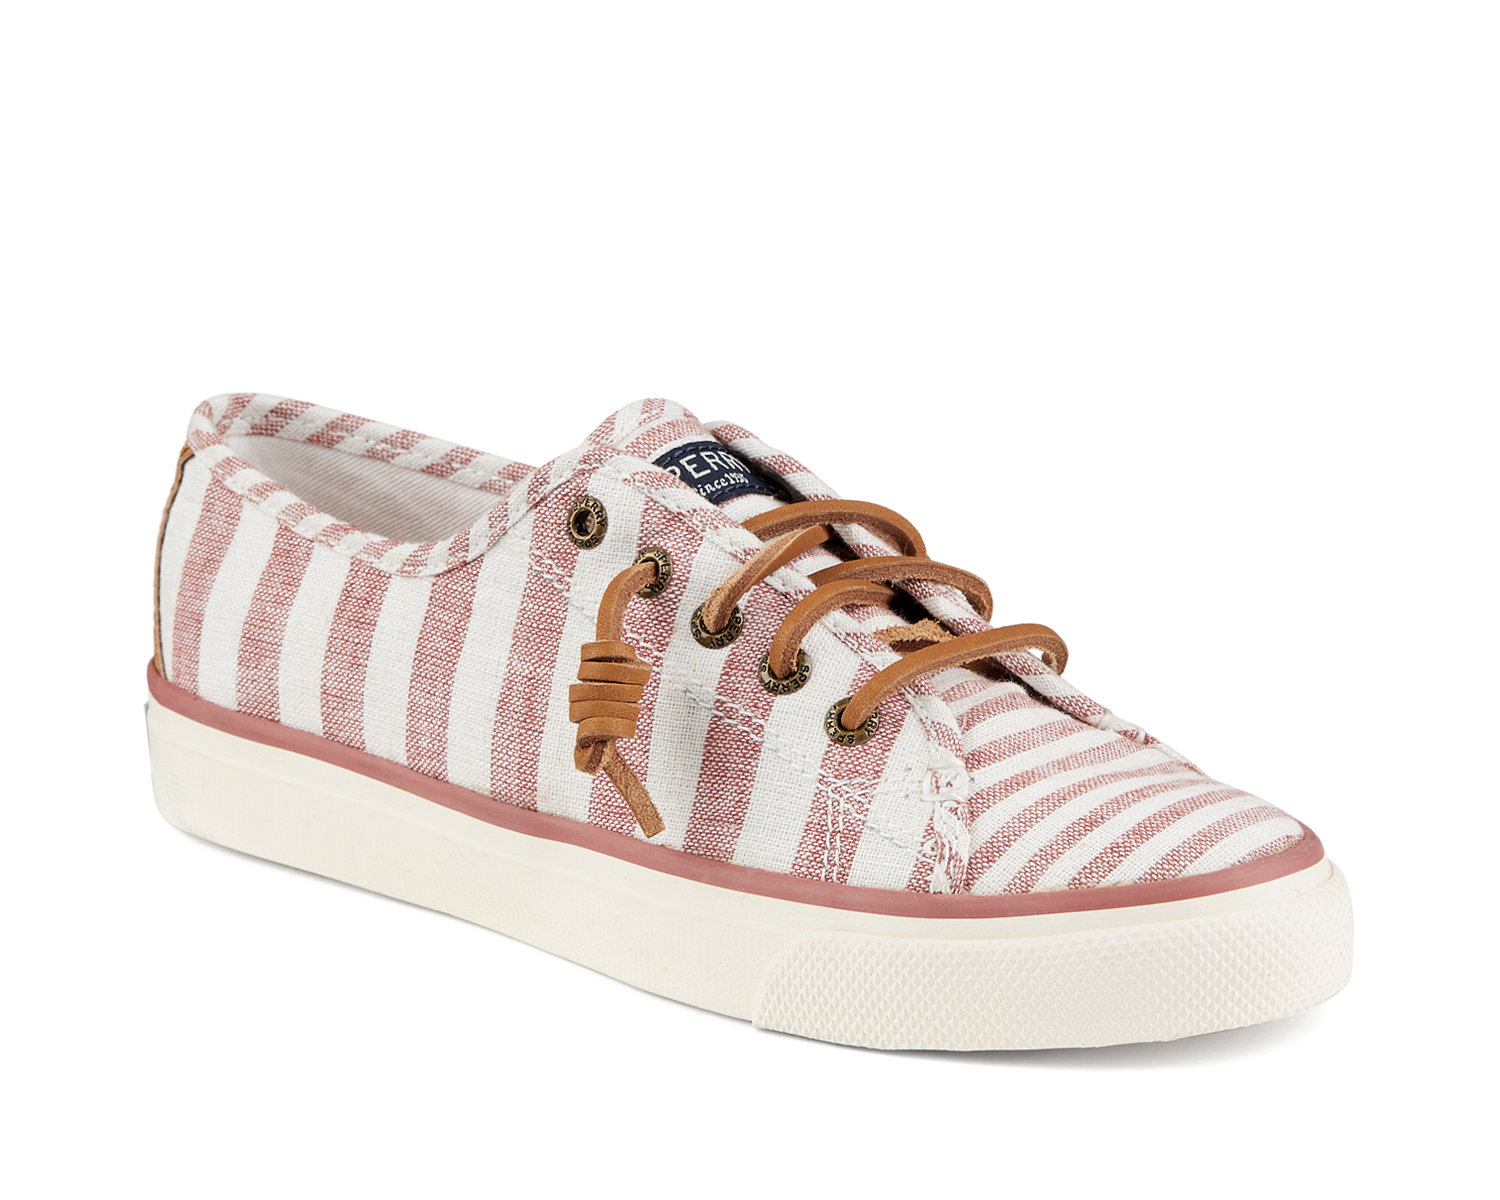 Seacoast Multi Stripe-STS95228-PVP 74.90€